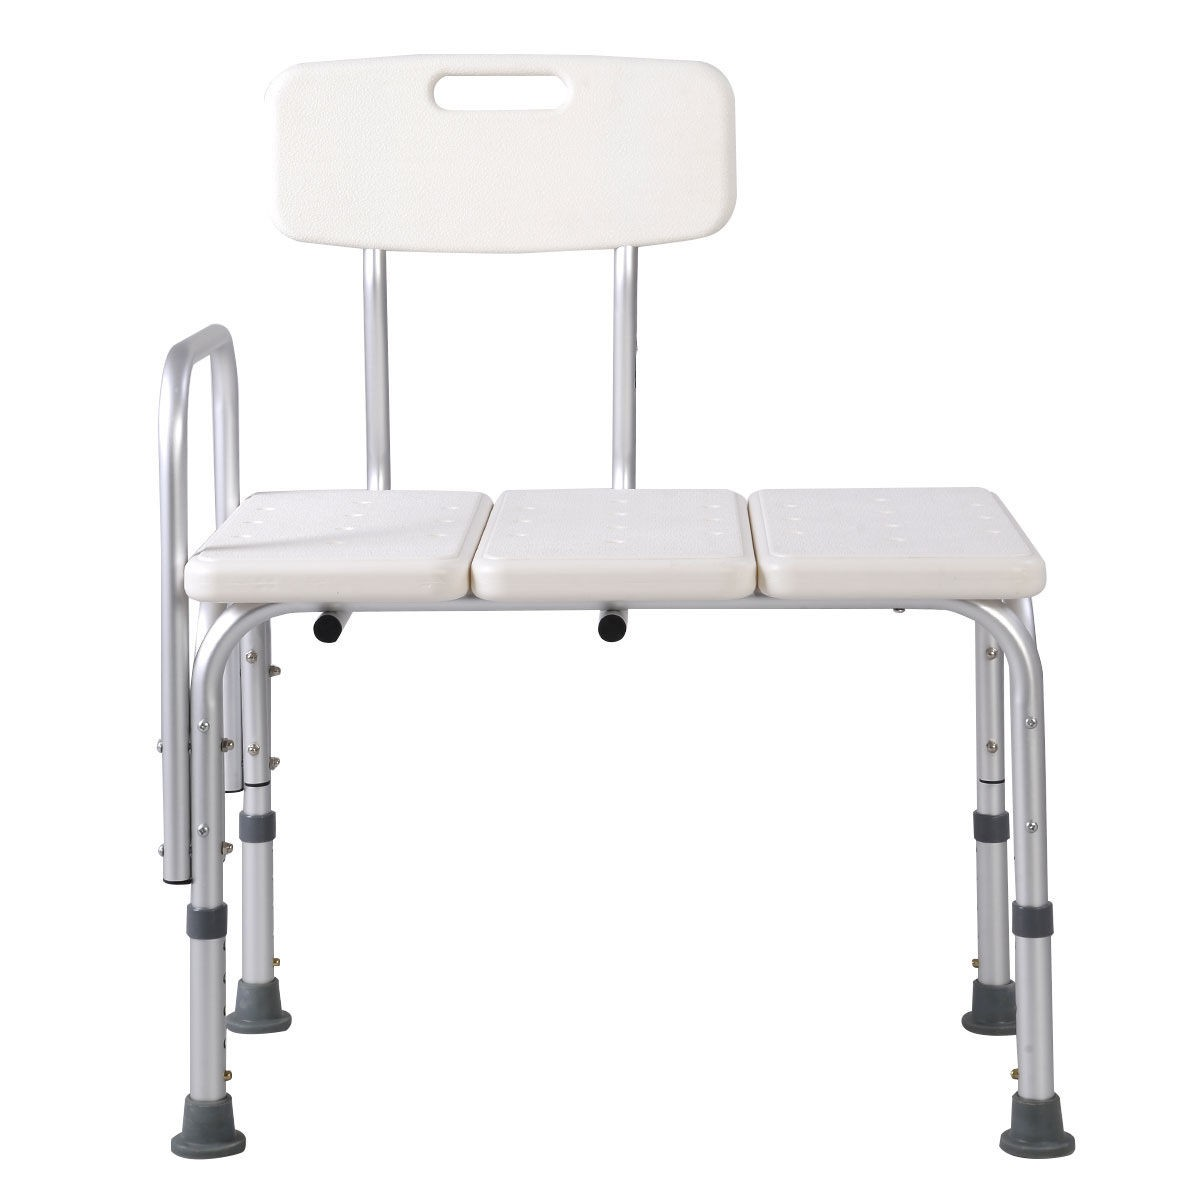 Shower Bath Seat Adjustable Medical Bathroom Bath Tub Transfer Bench Chair Ebay